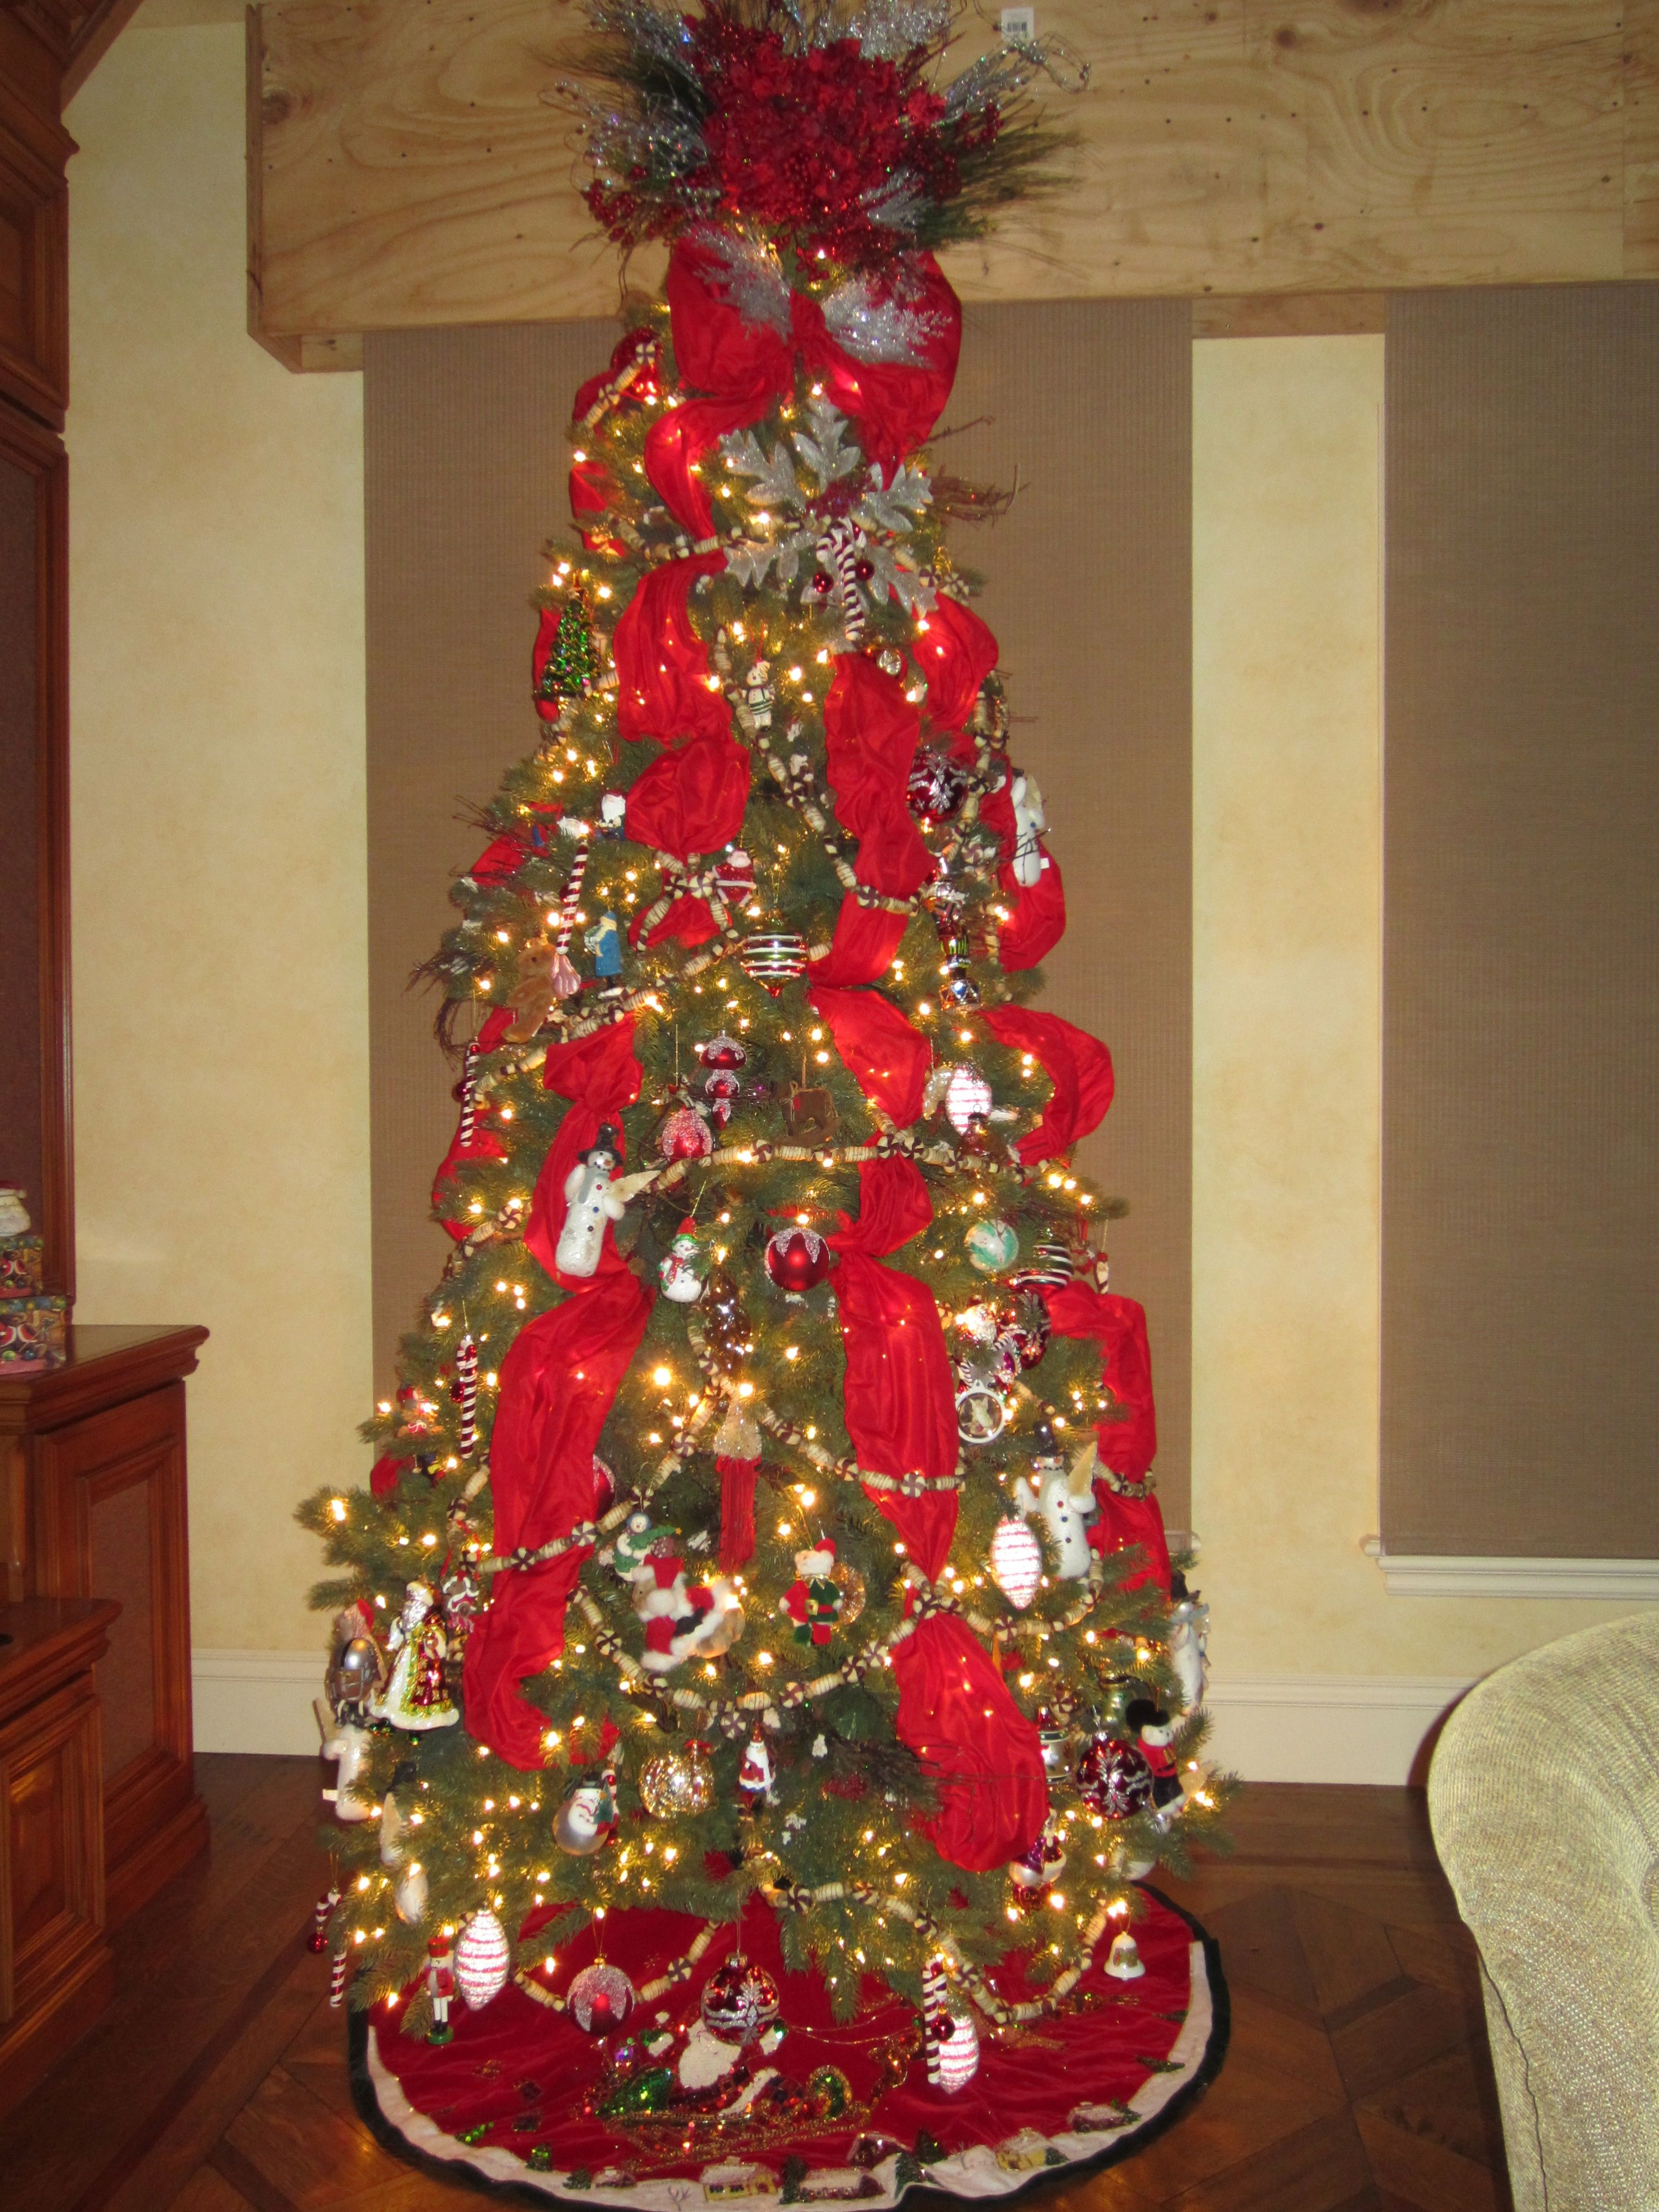 Large Wired Ribbon Running Down The Tree Adds A Huge Splash Of Color Christmas Tree Decorations Christmas Decorations Christmas Tree